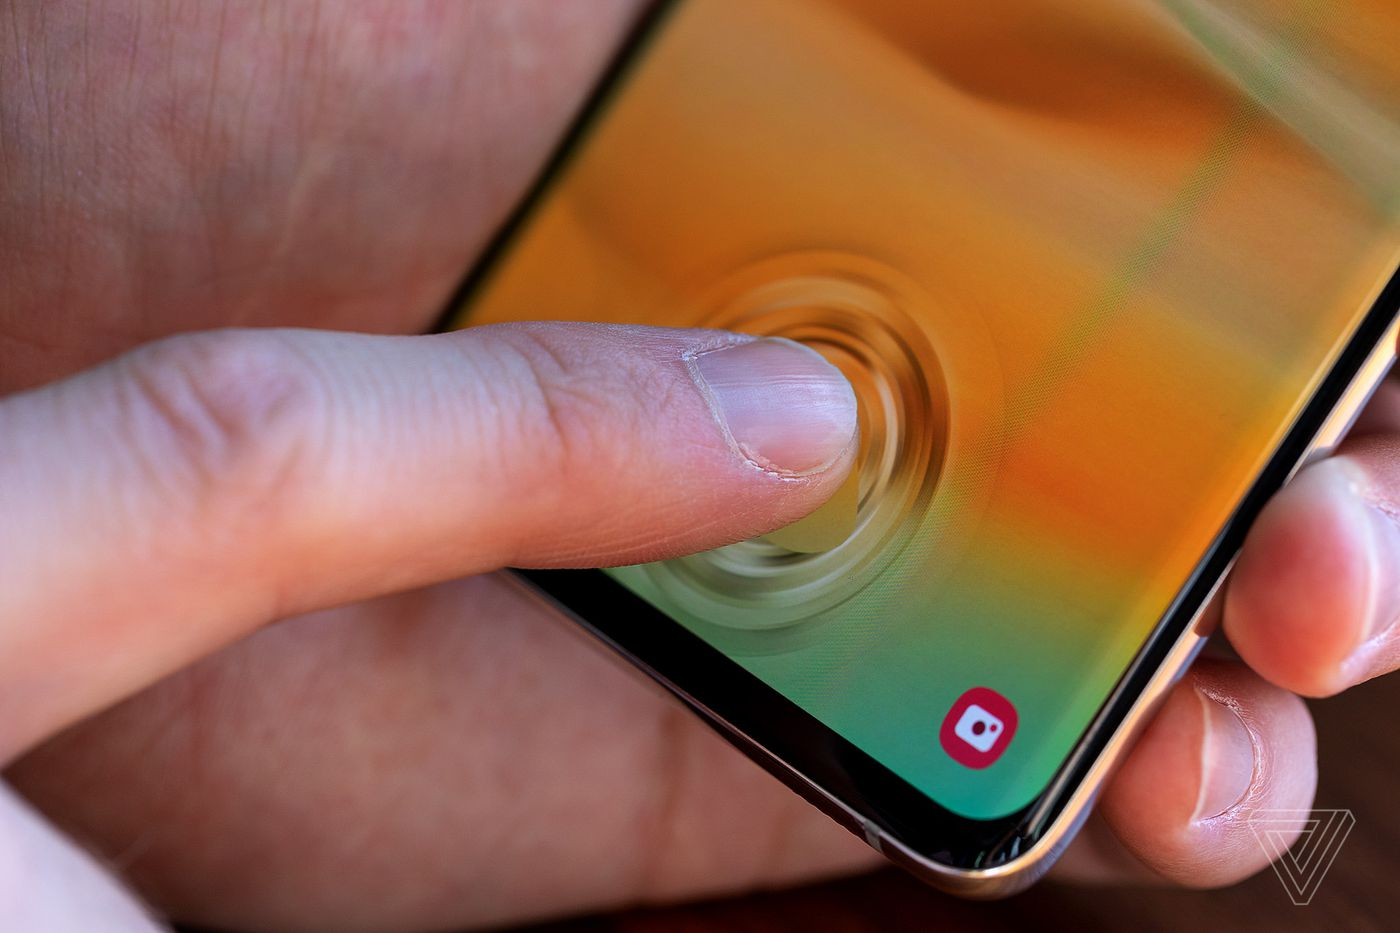 Samsung Galaxy S10 Plus review: the anti-iPhone - The Verge